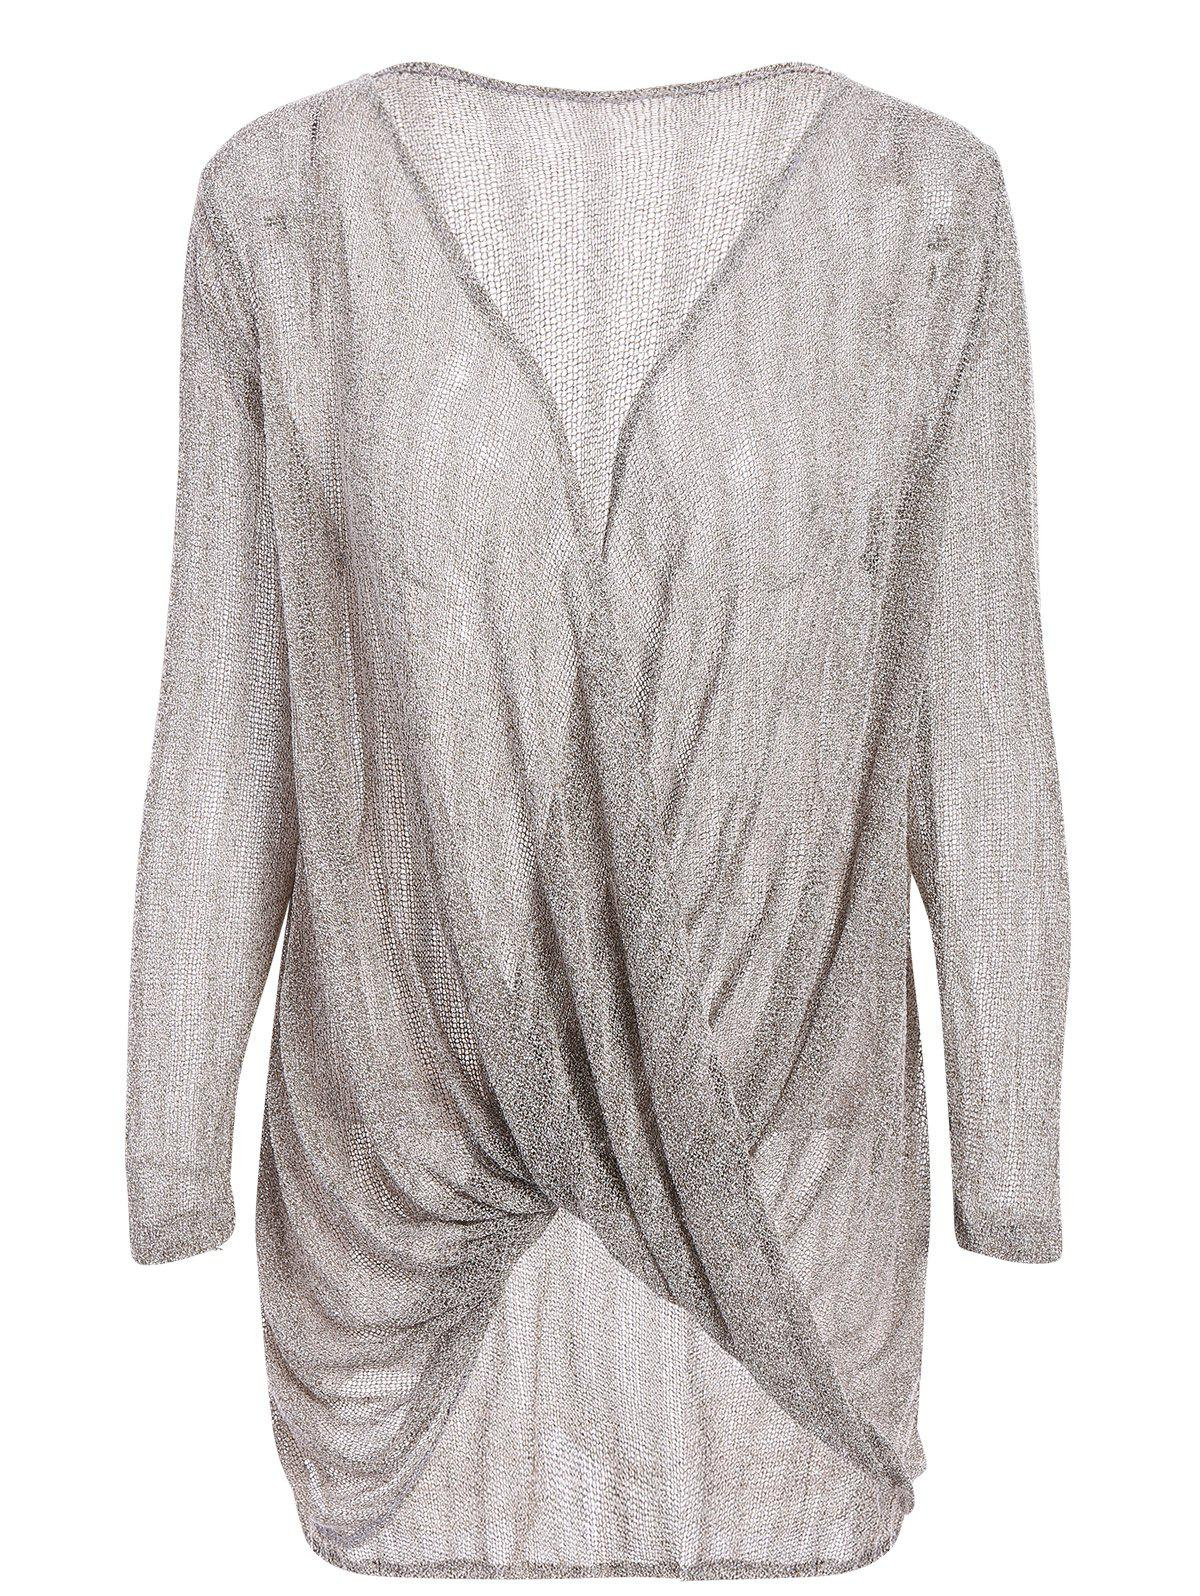 Stylish Loose-Fitting Long Sleeve Solid Color Knitwear For Women - GRAY S